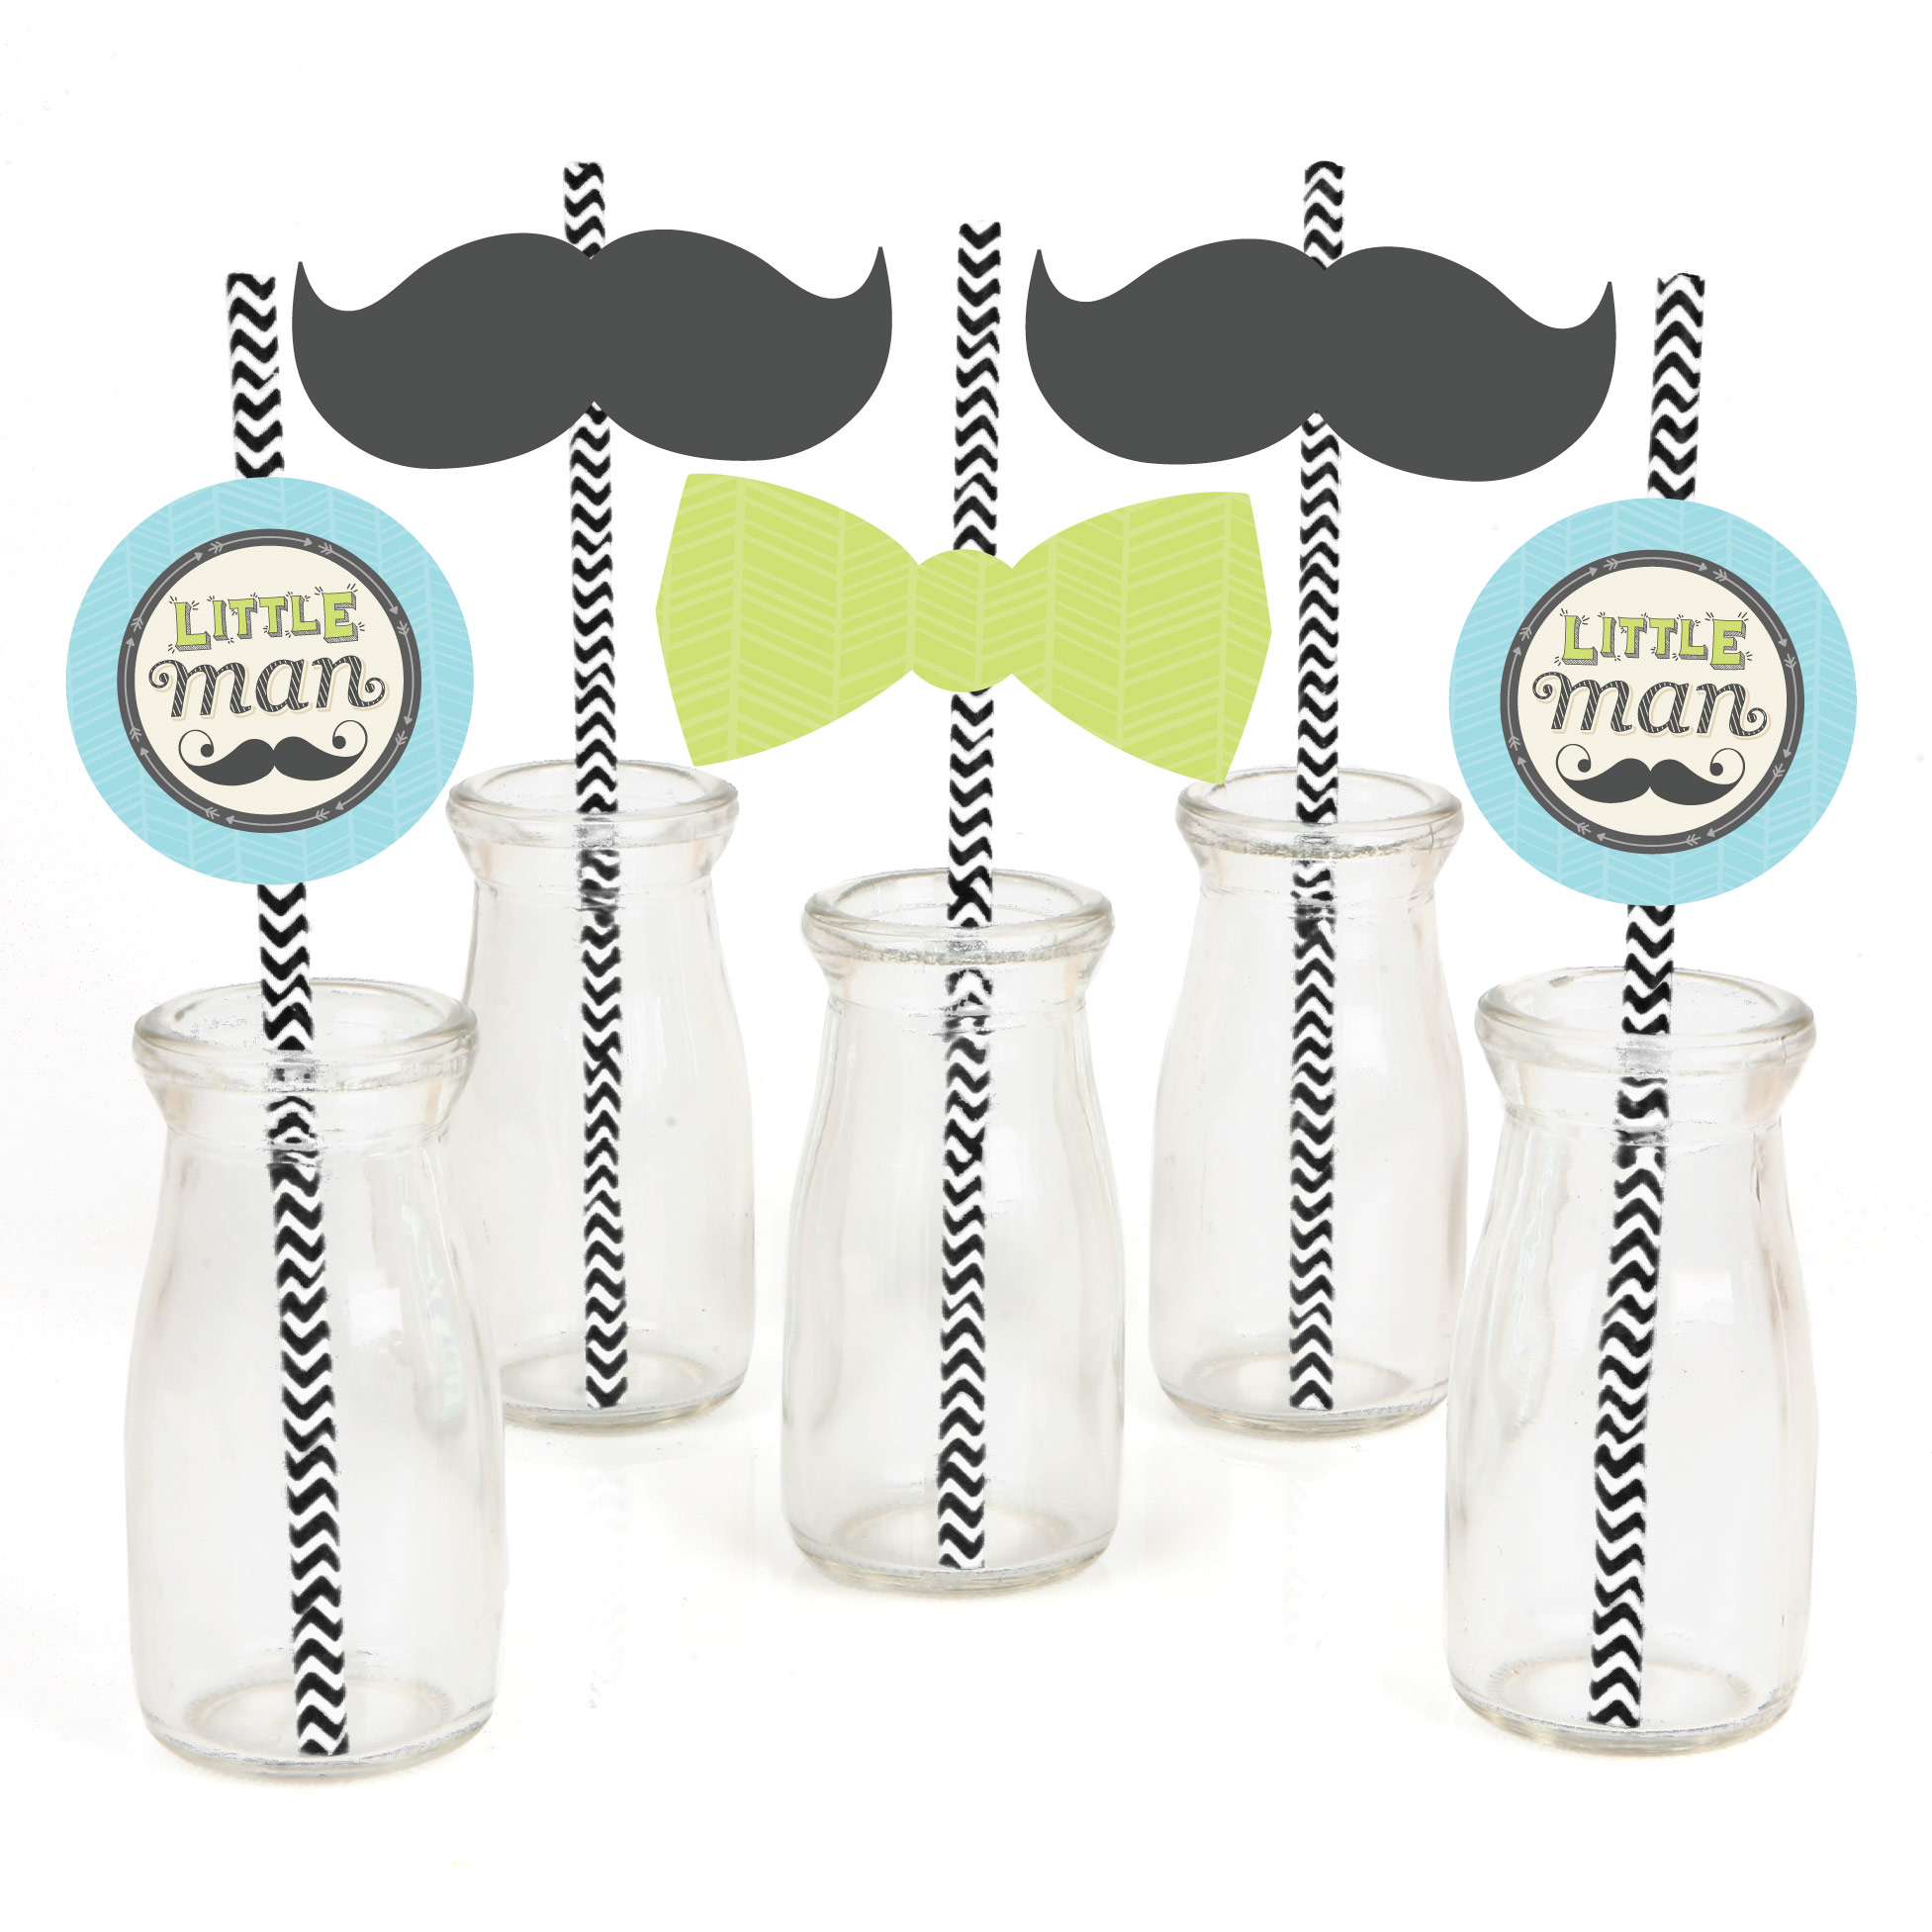 Dashing Little Man Mustache - Paper Straw Decor - Baby Shower or Birthday Party Striped Decorative Straws - Set of 24